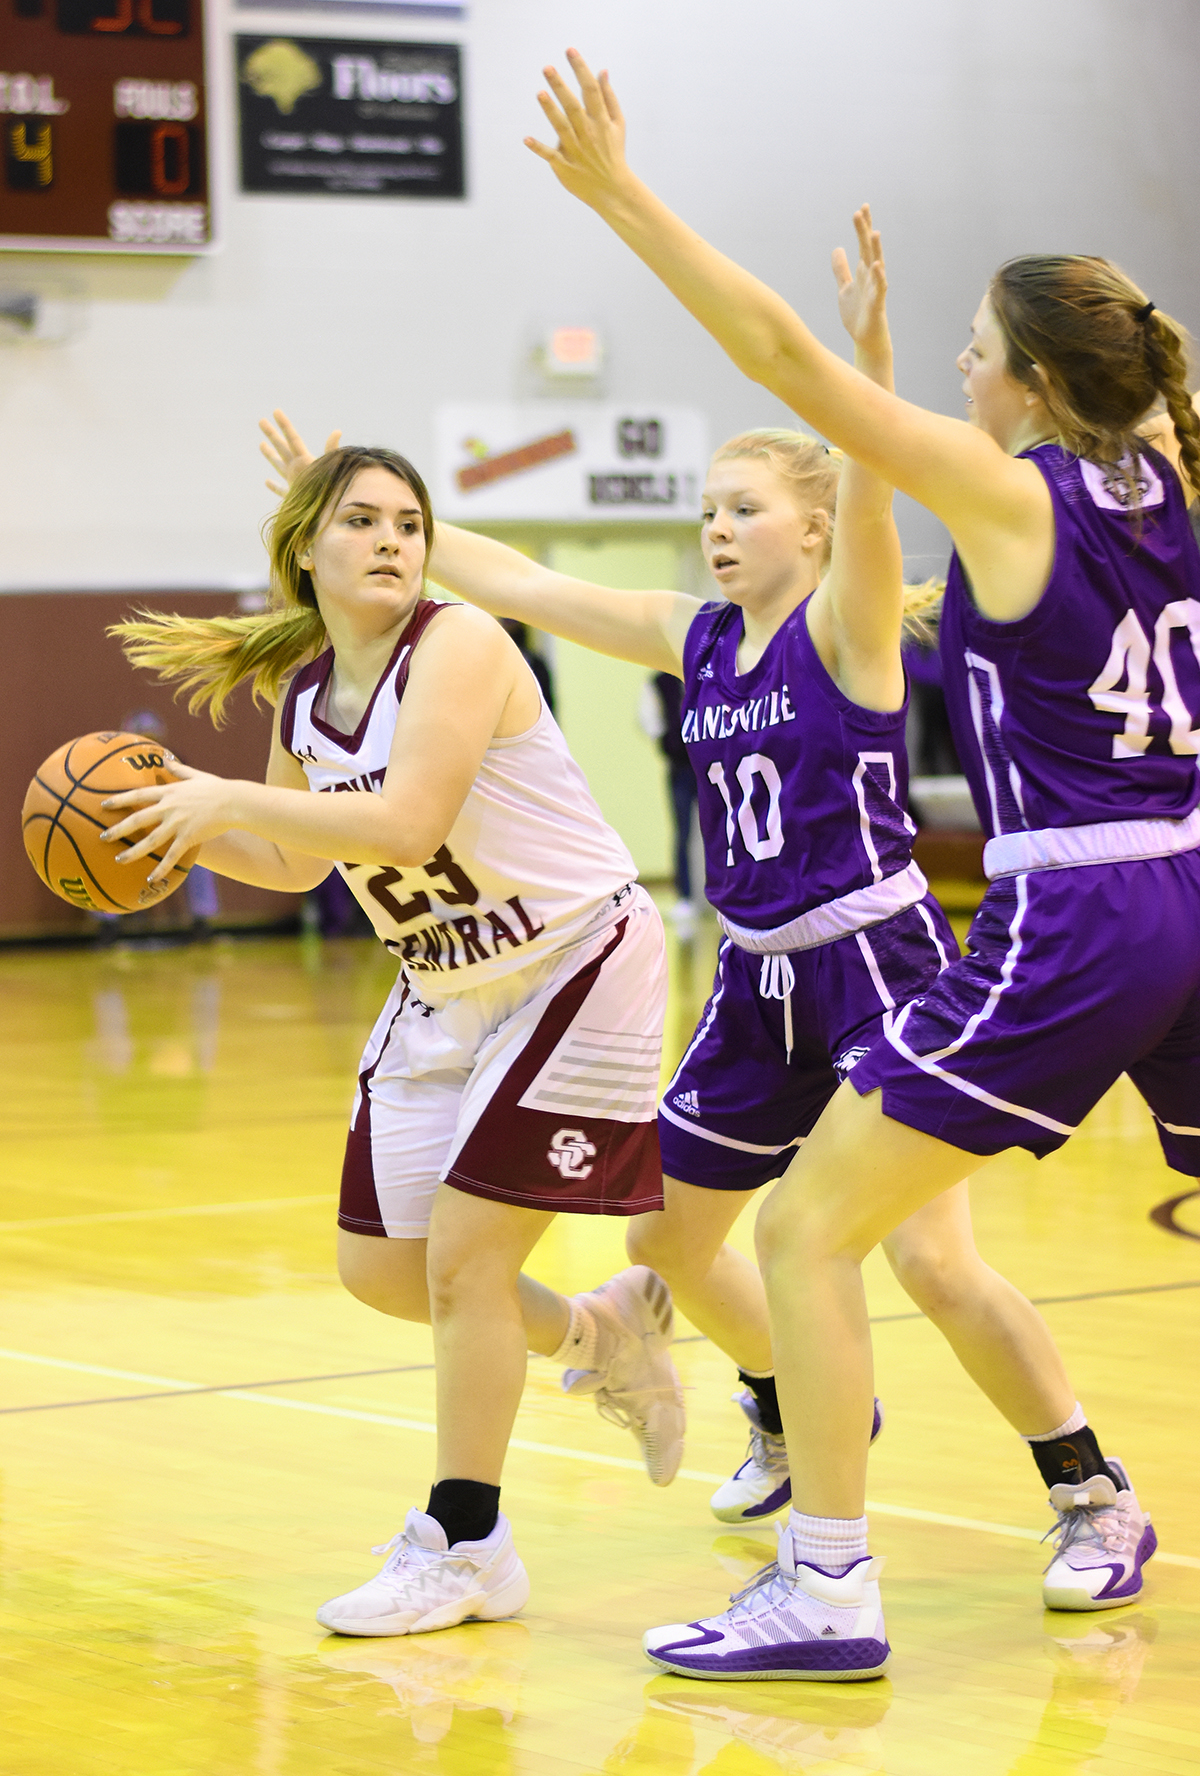 Lady Rebels no match for Adams, Lanesville